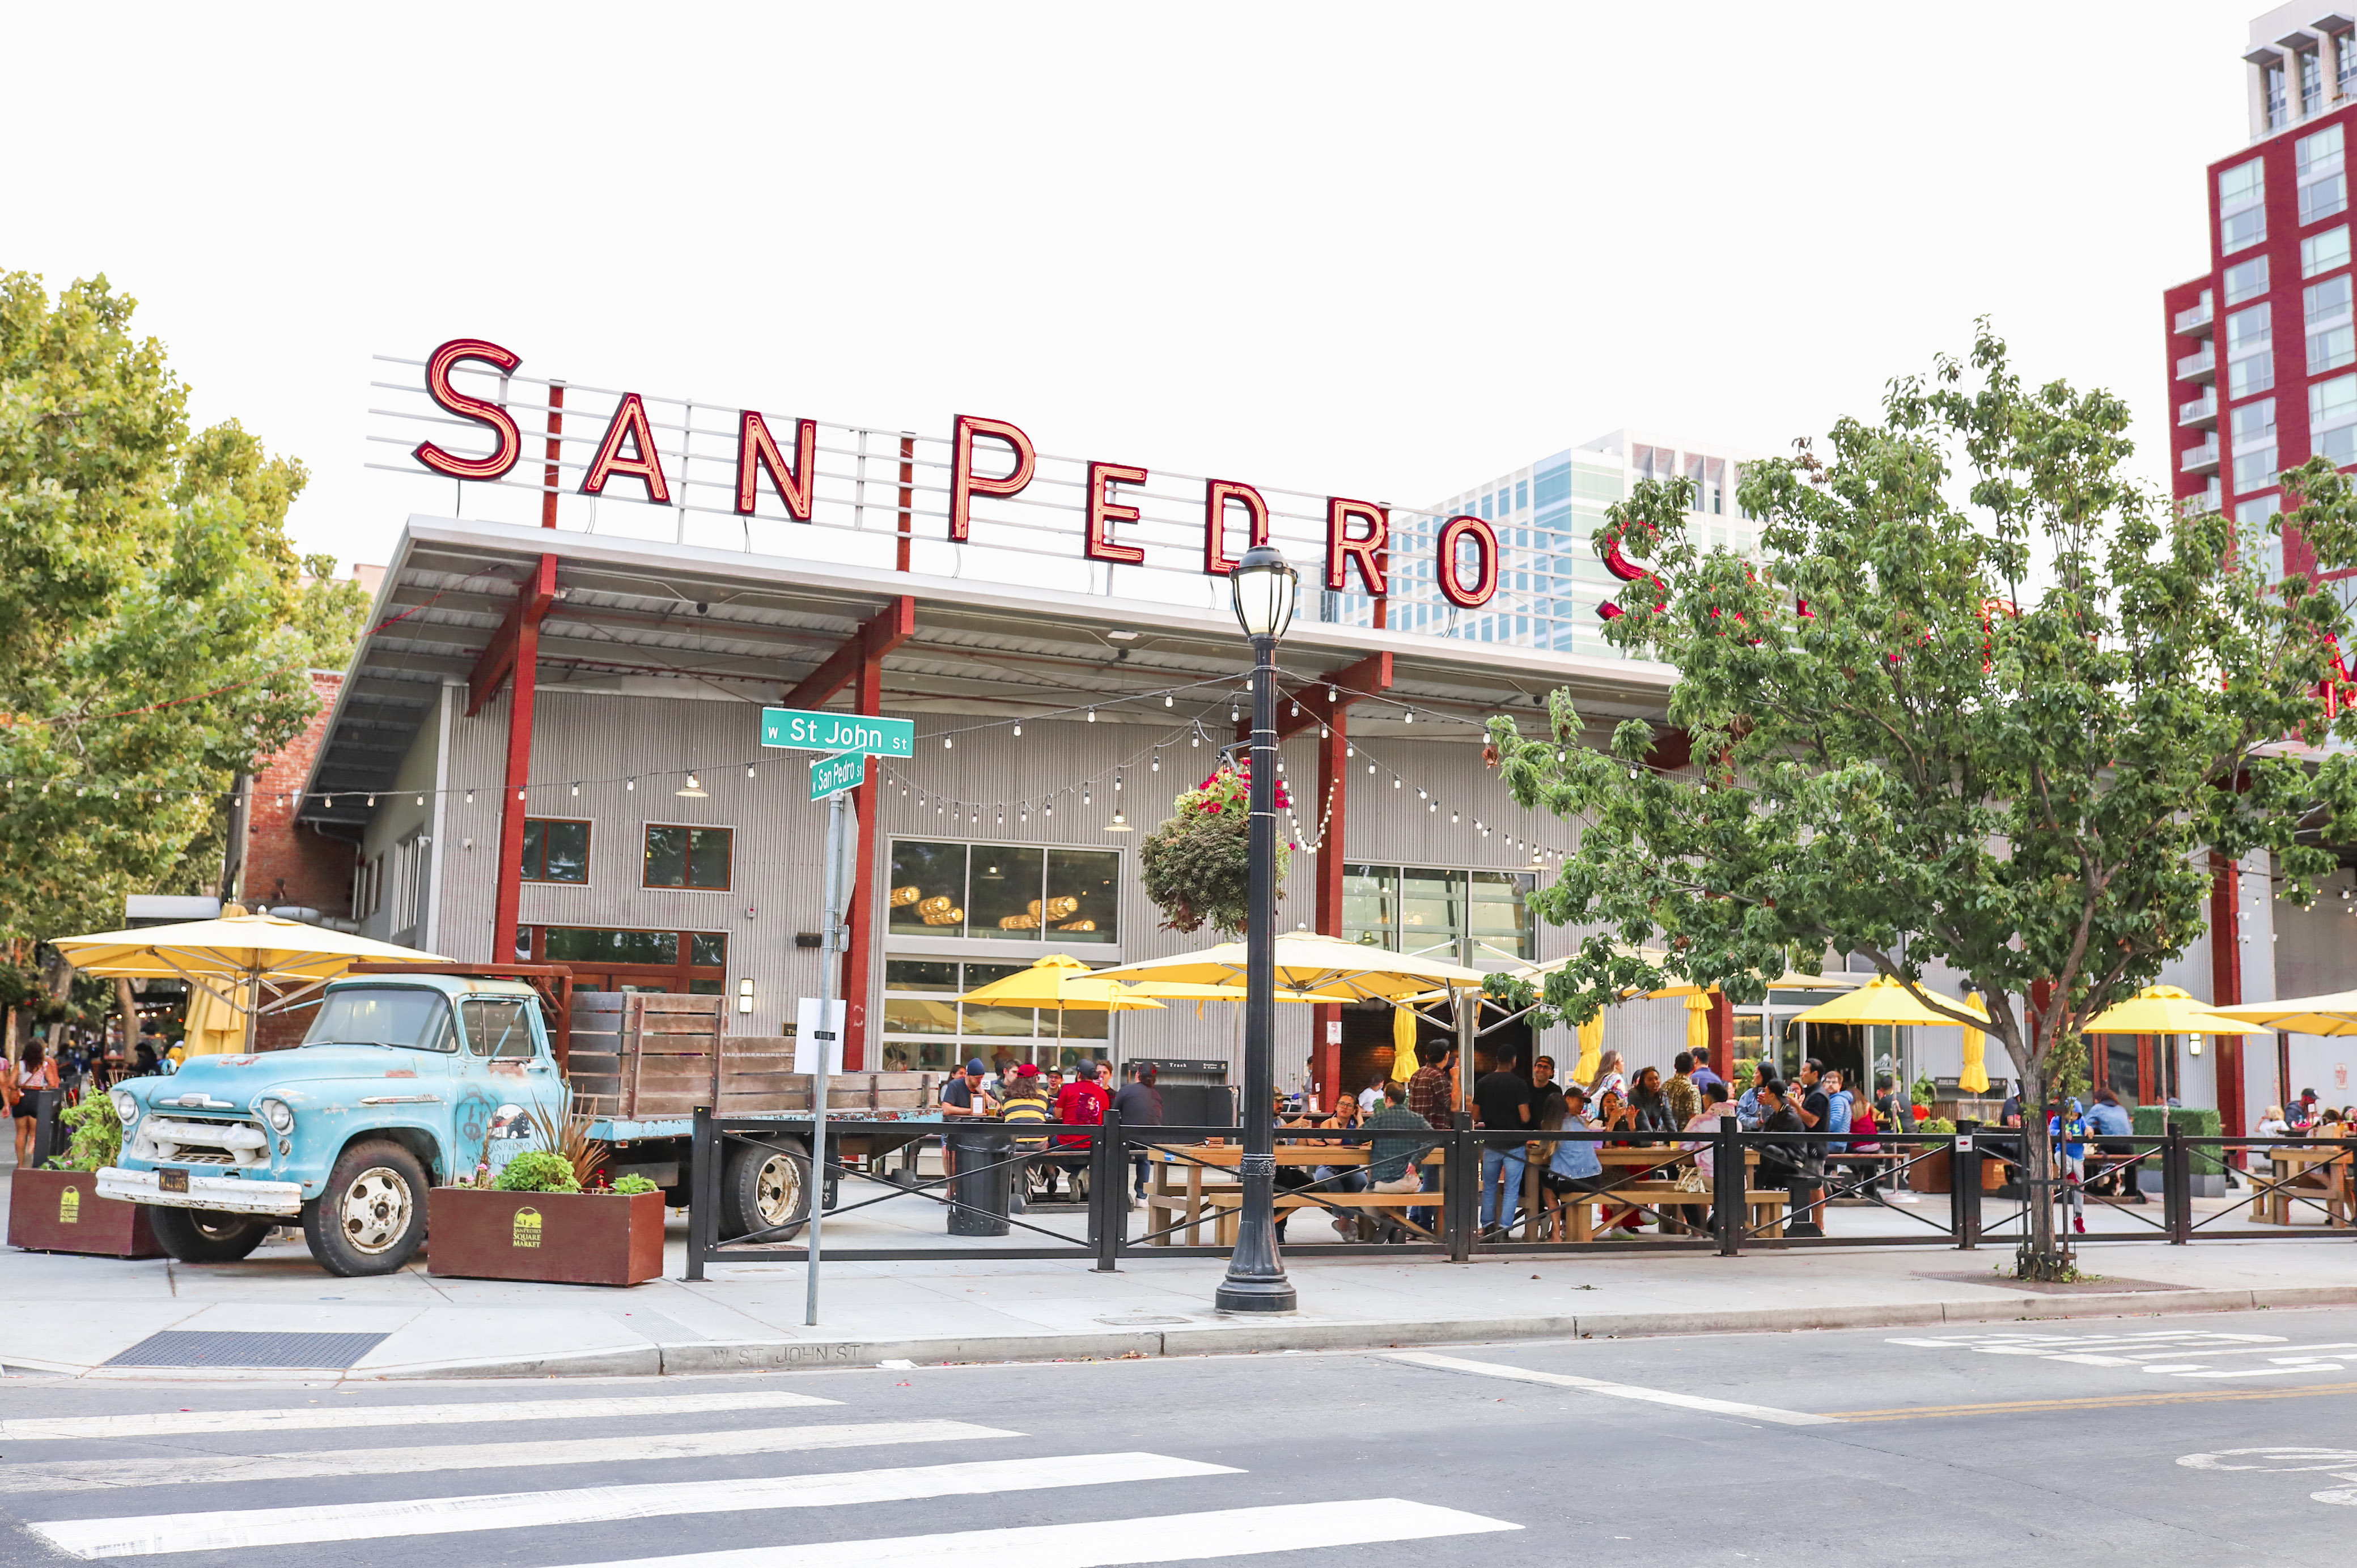 A view of San Pedro Square Market from across the street.